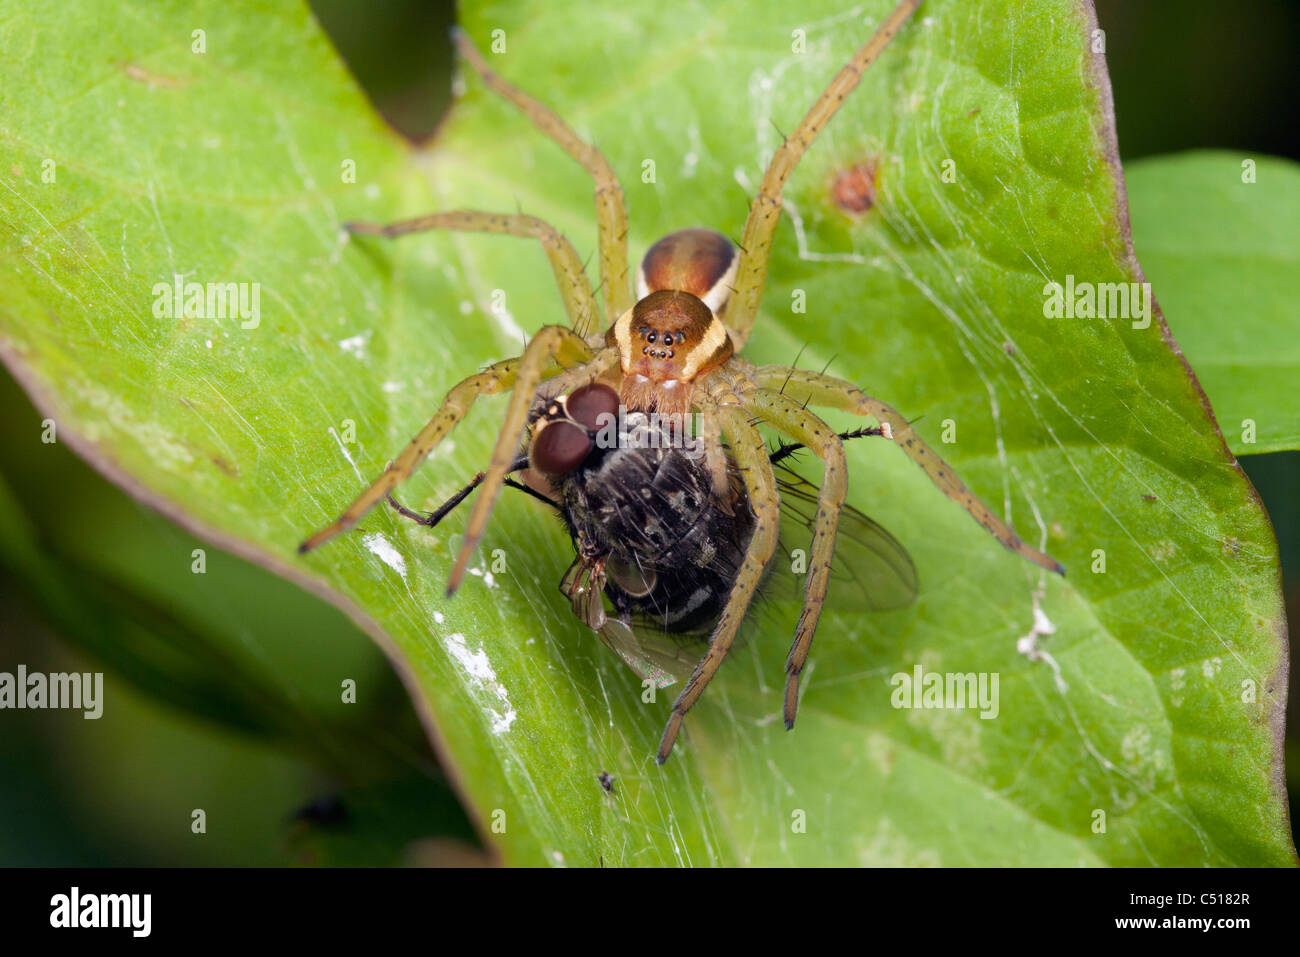 Spider catching a fly - Stock Image